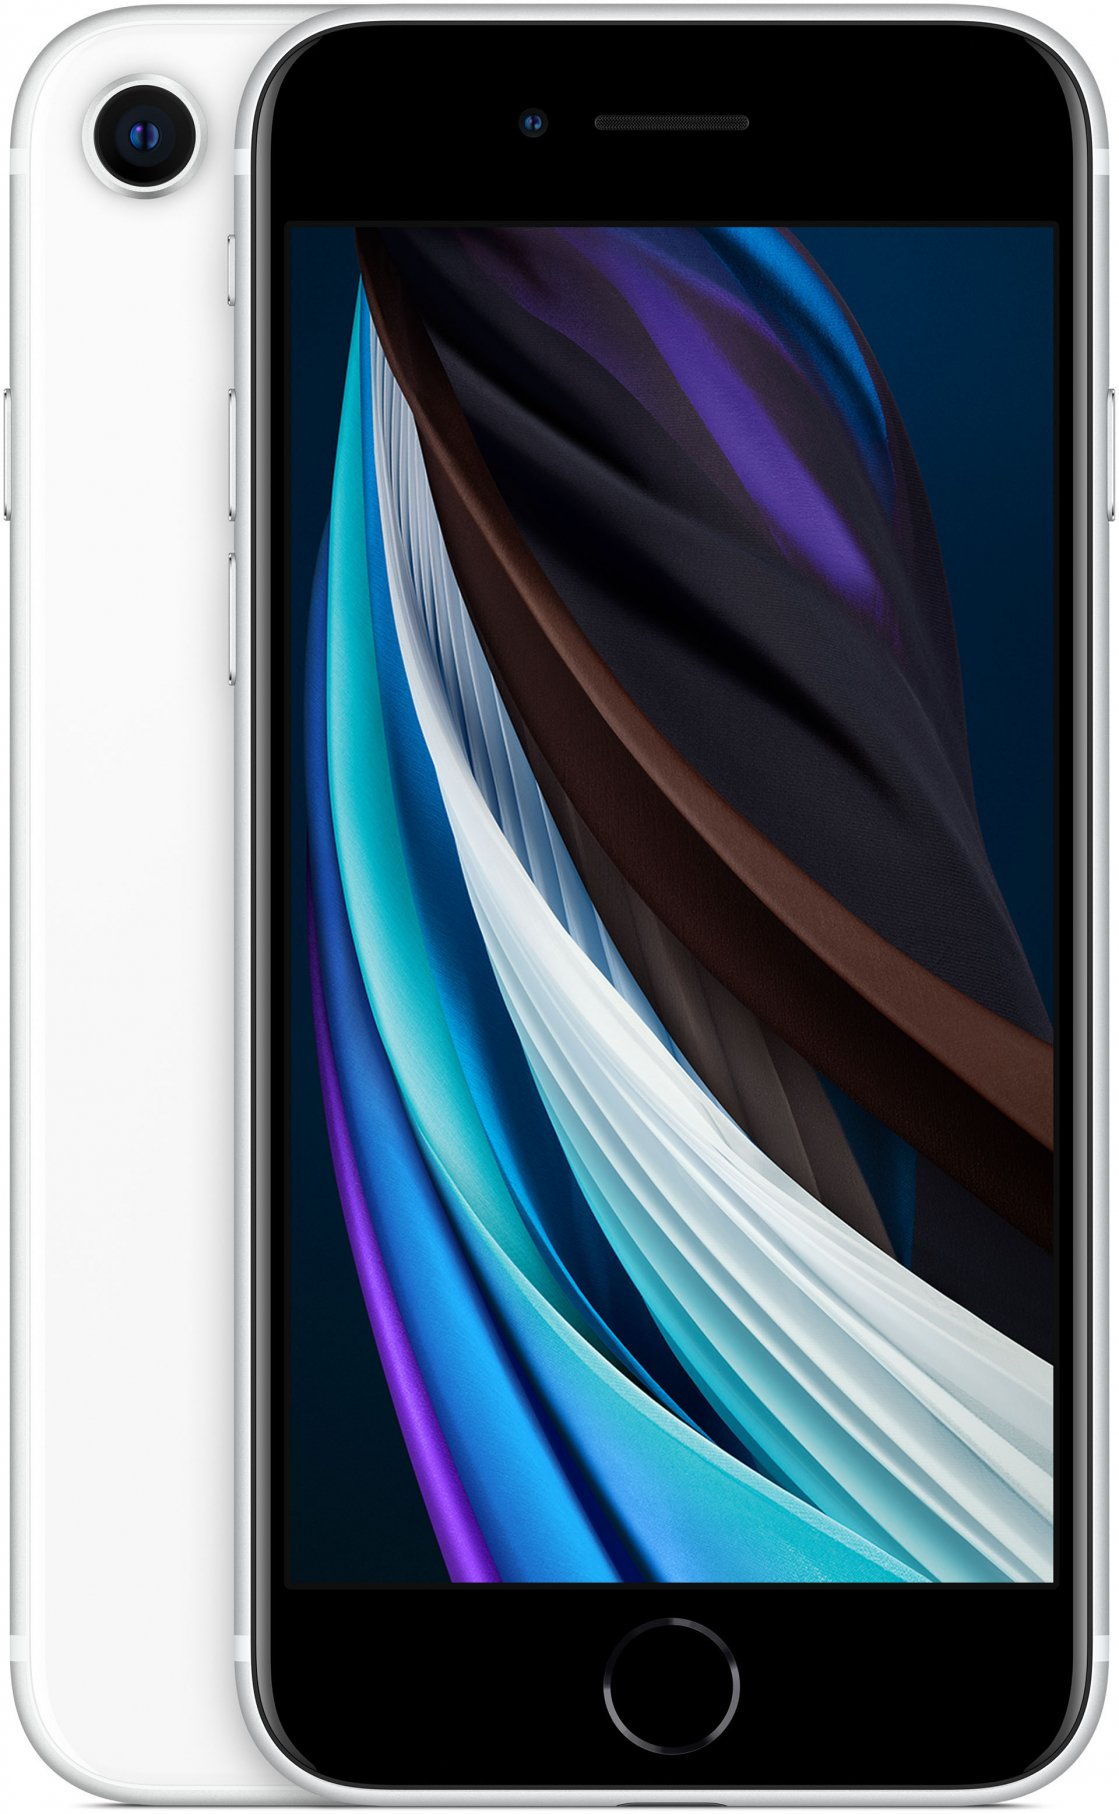 Apple iPhone SE 2020 (128Gb, white, MXD12RU/A)